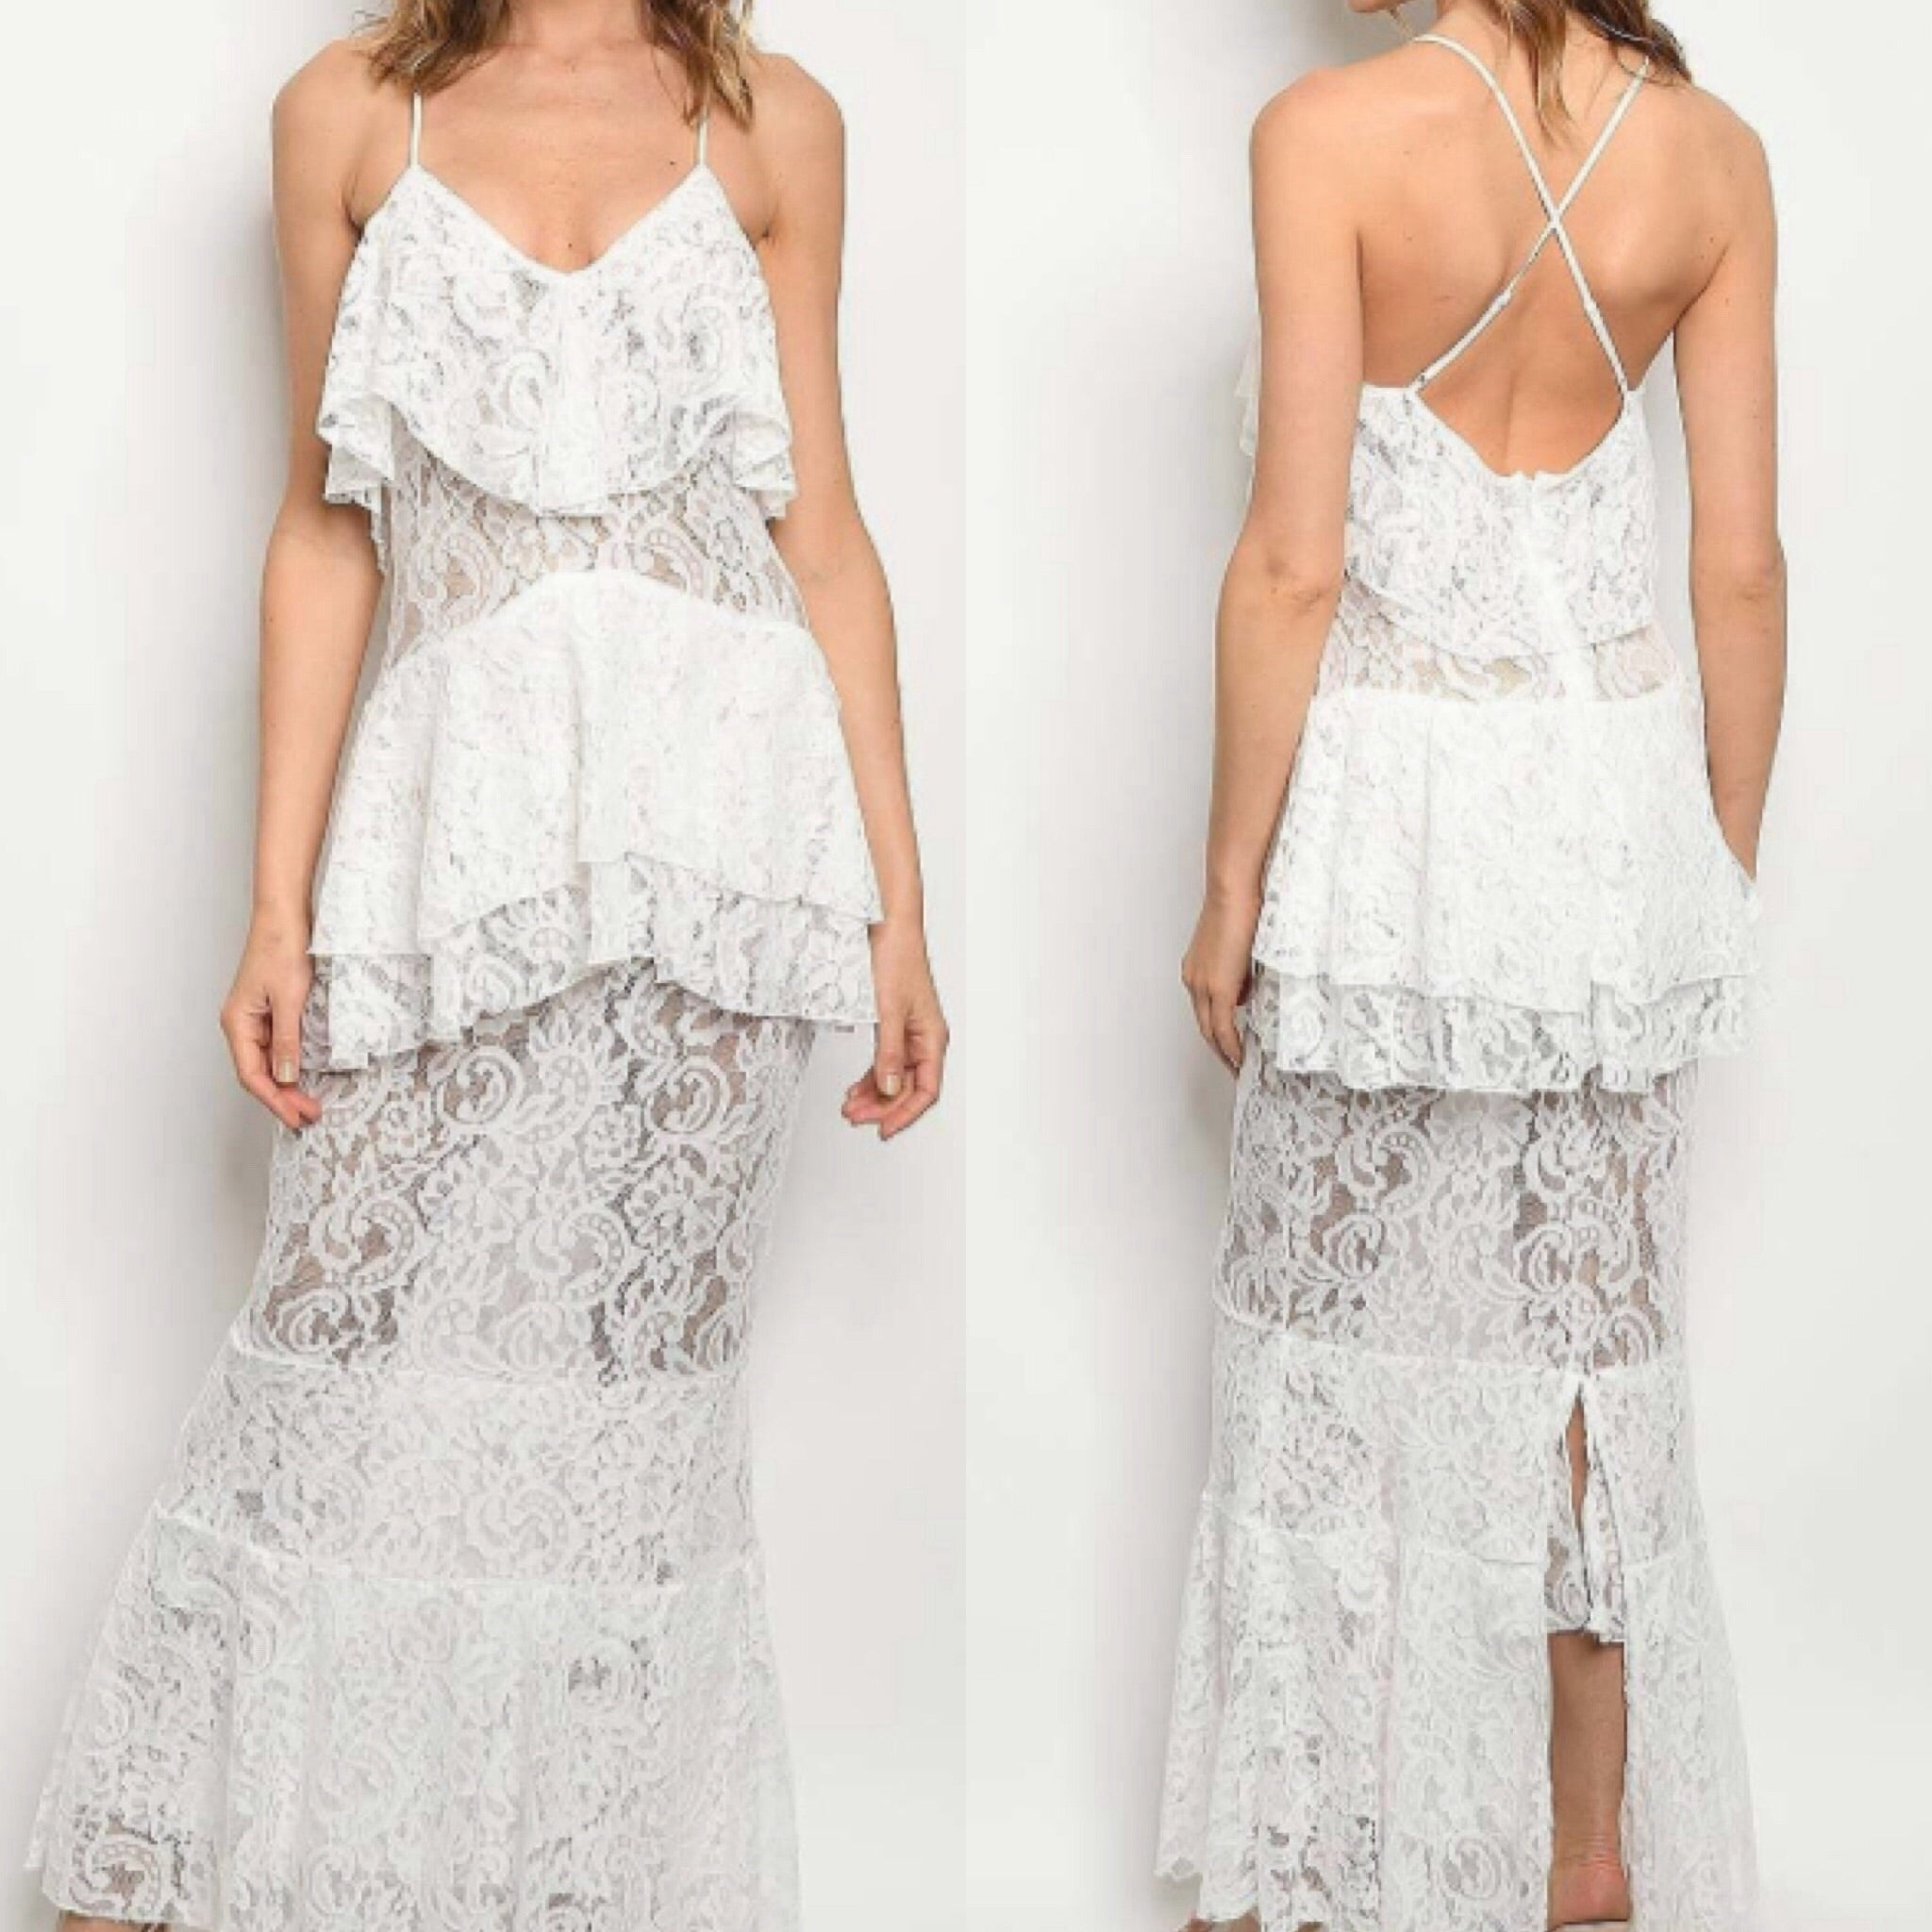 Bliss White Lace Maxi - TRUE.